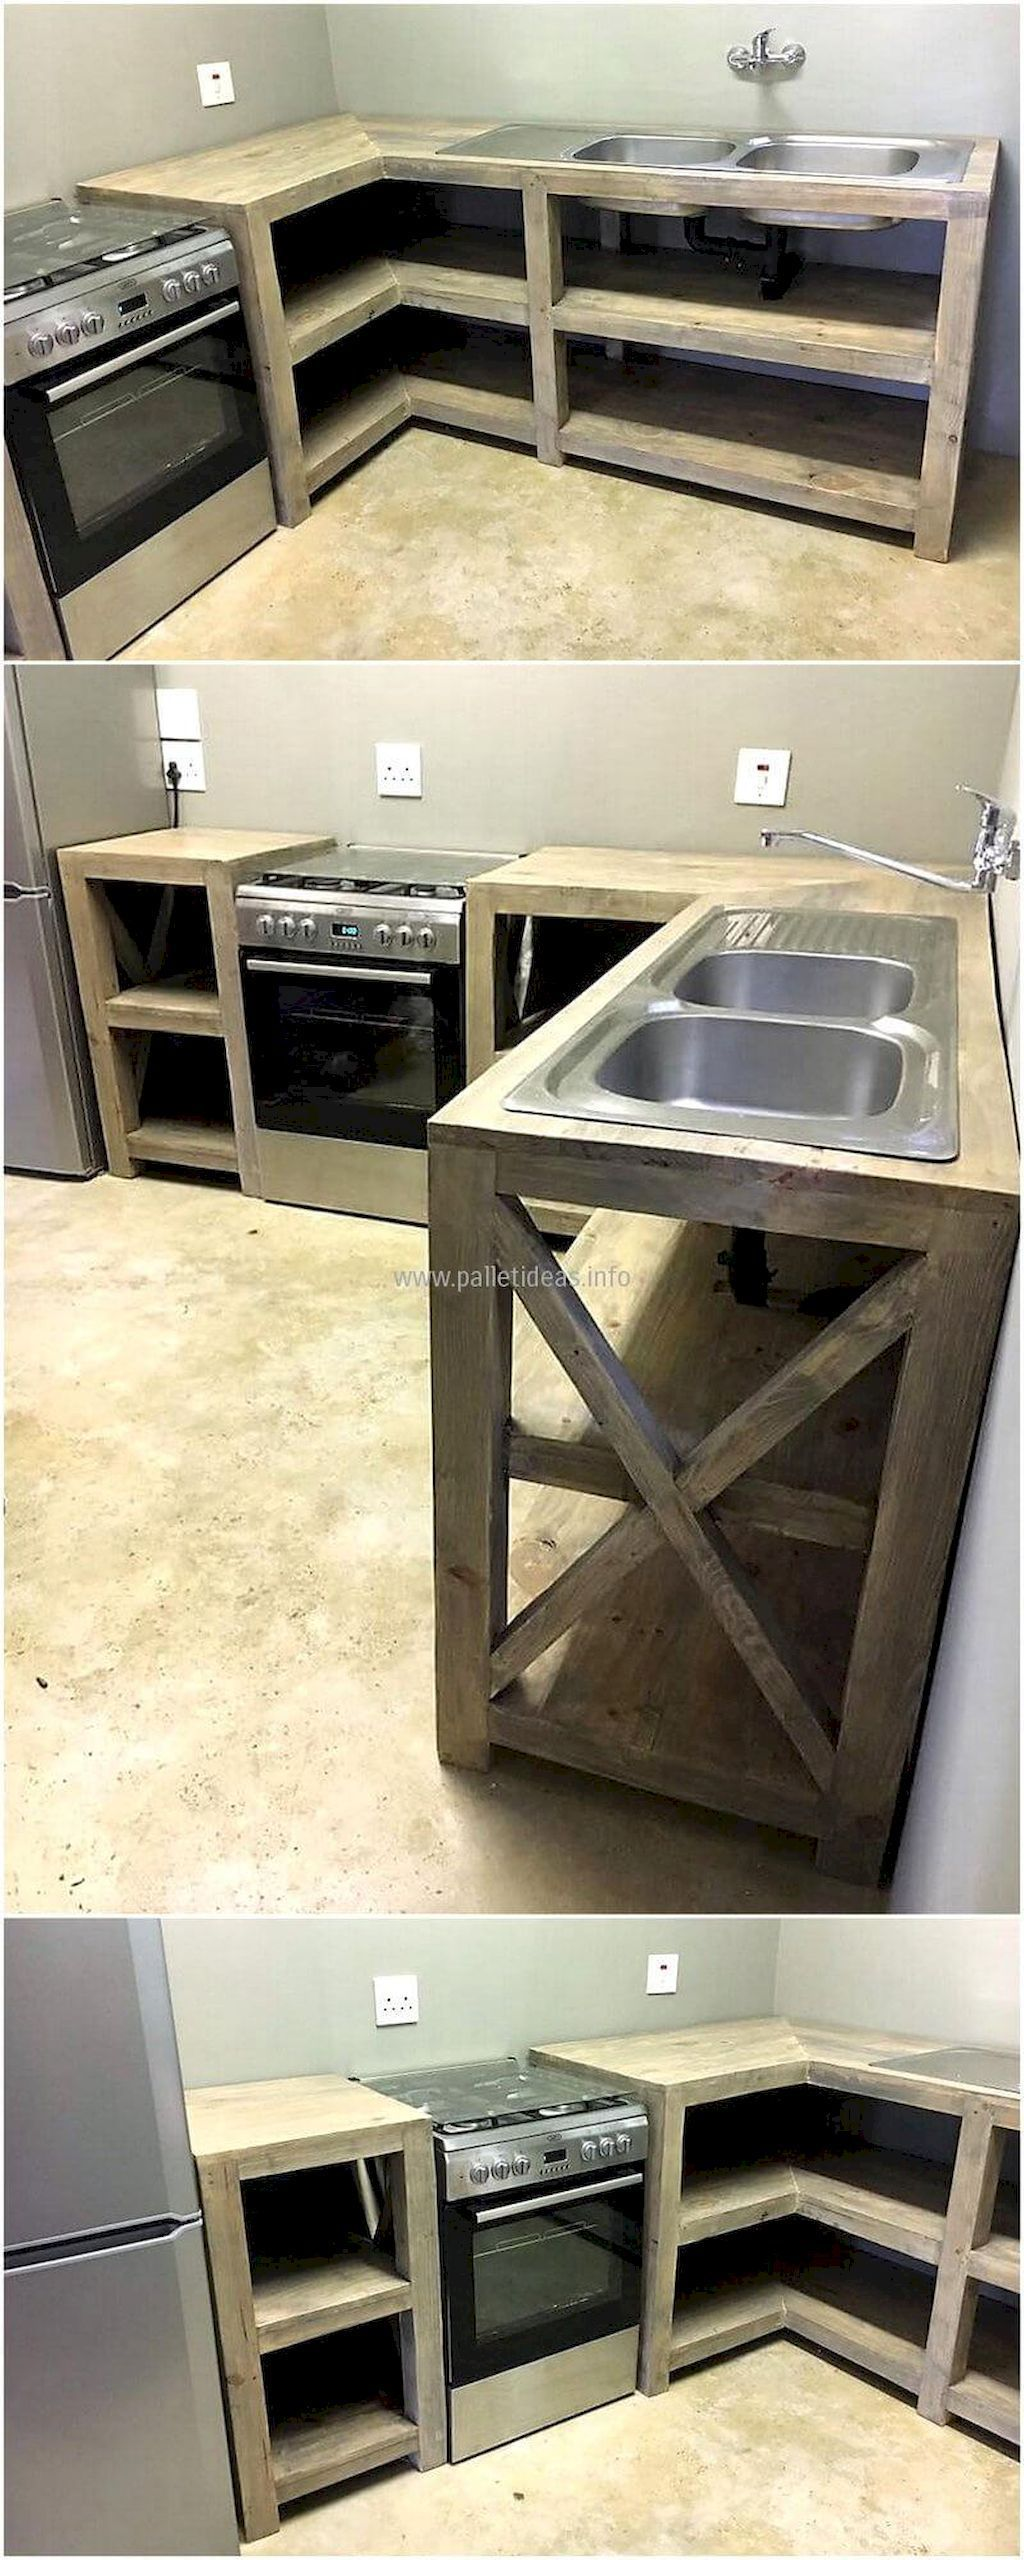 Cucina Pallet Fai Da Te easy pallet project for home decor (41) (with images) | wood